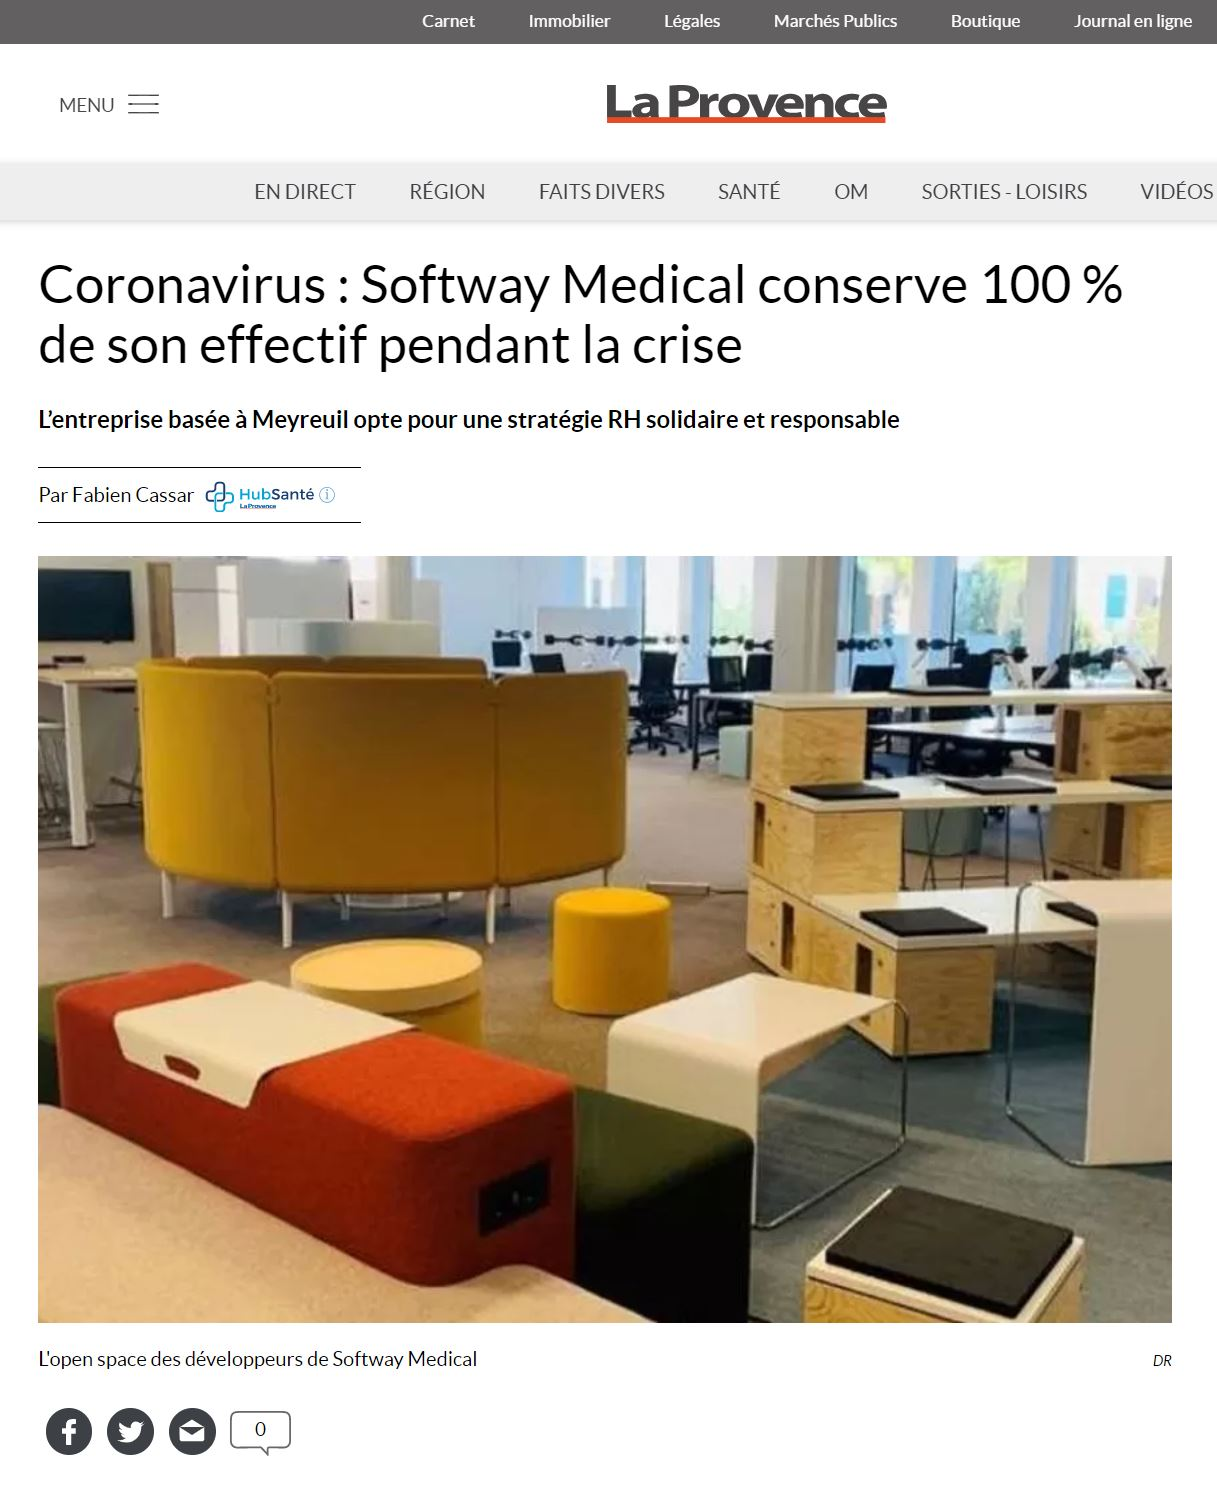 Coronavirus : Softway Medical conserve 100% de son effectif pendant la crise